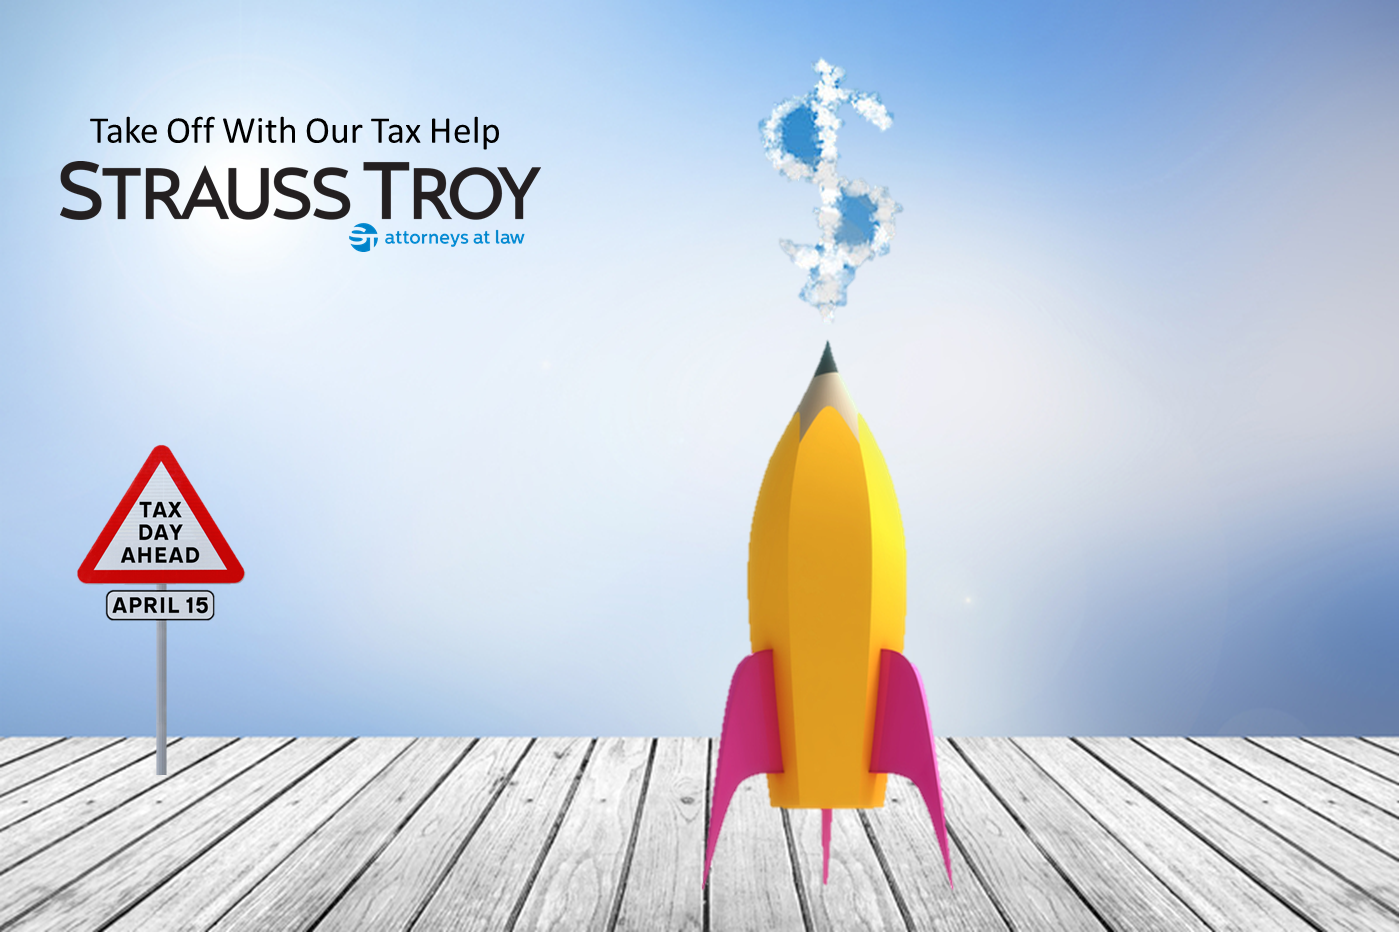 Strauss Troy Take Off With Our Tax Help